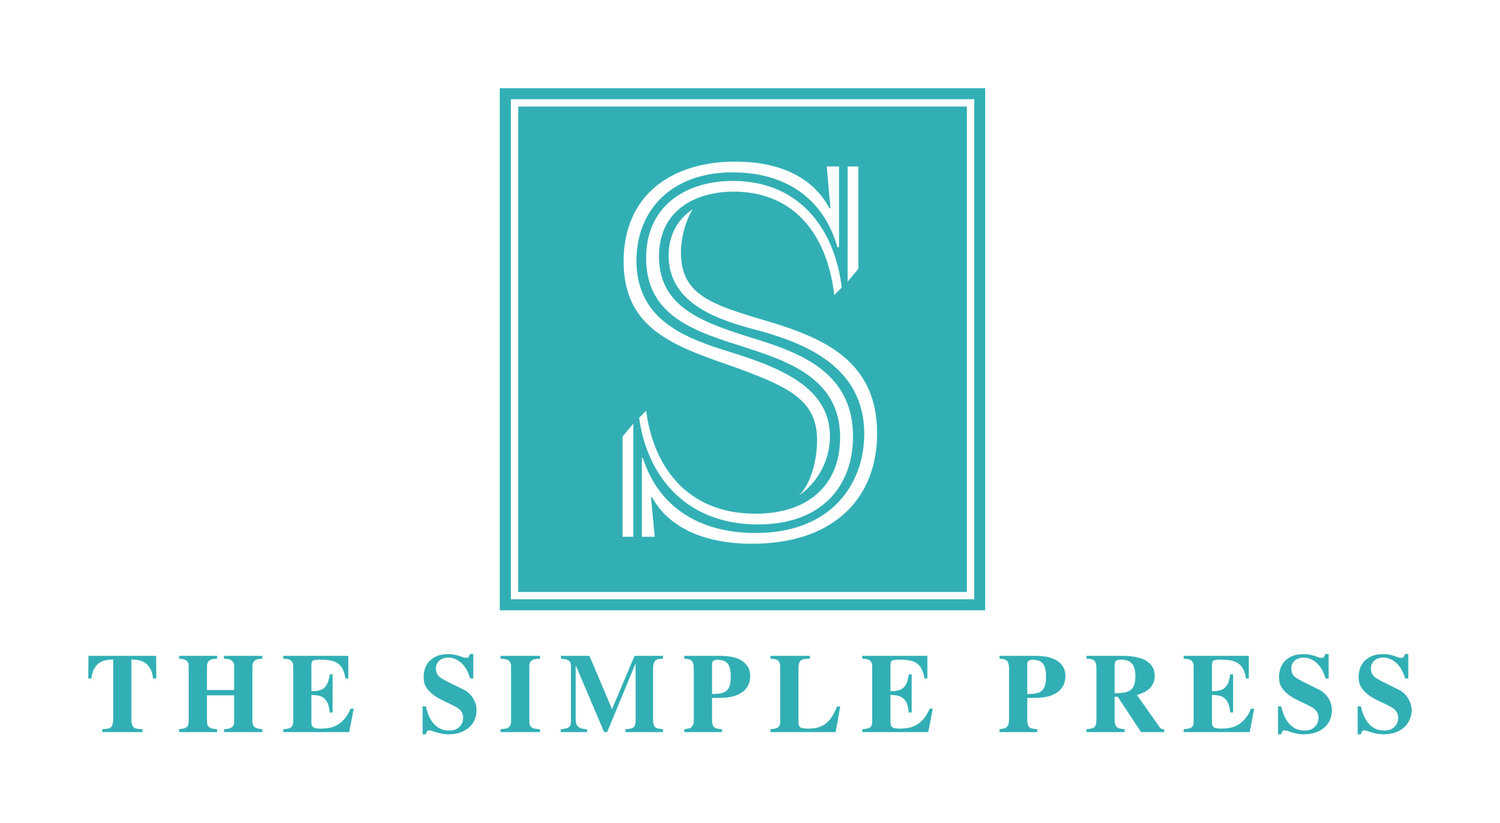 The Simple Press